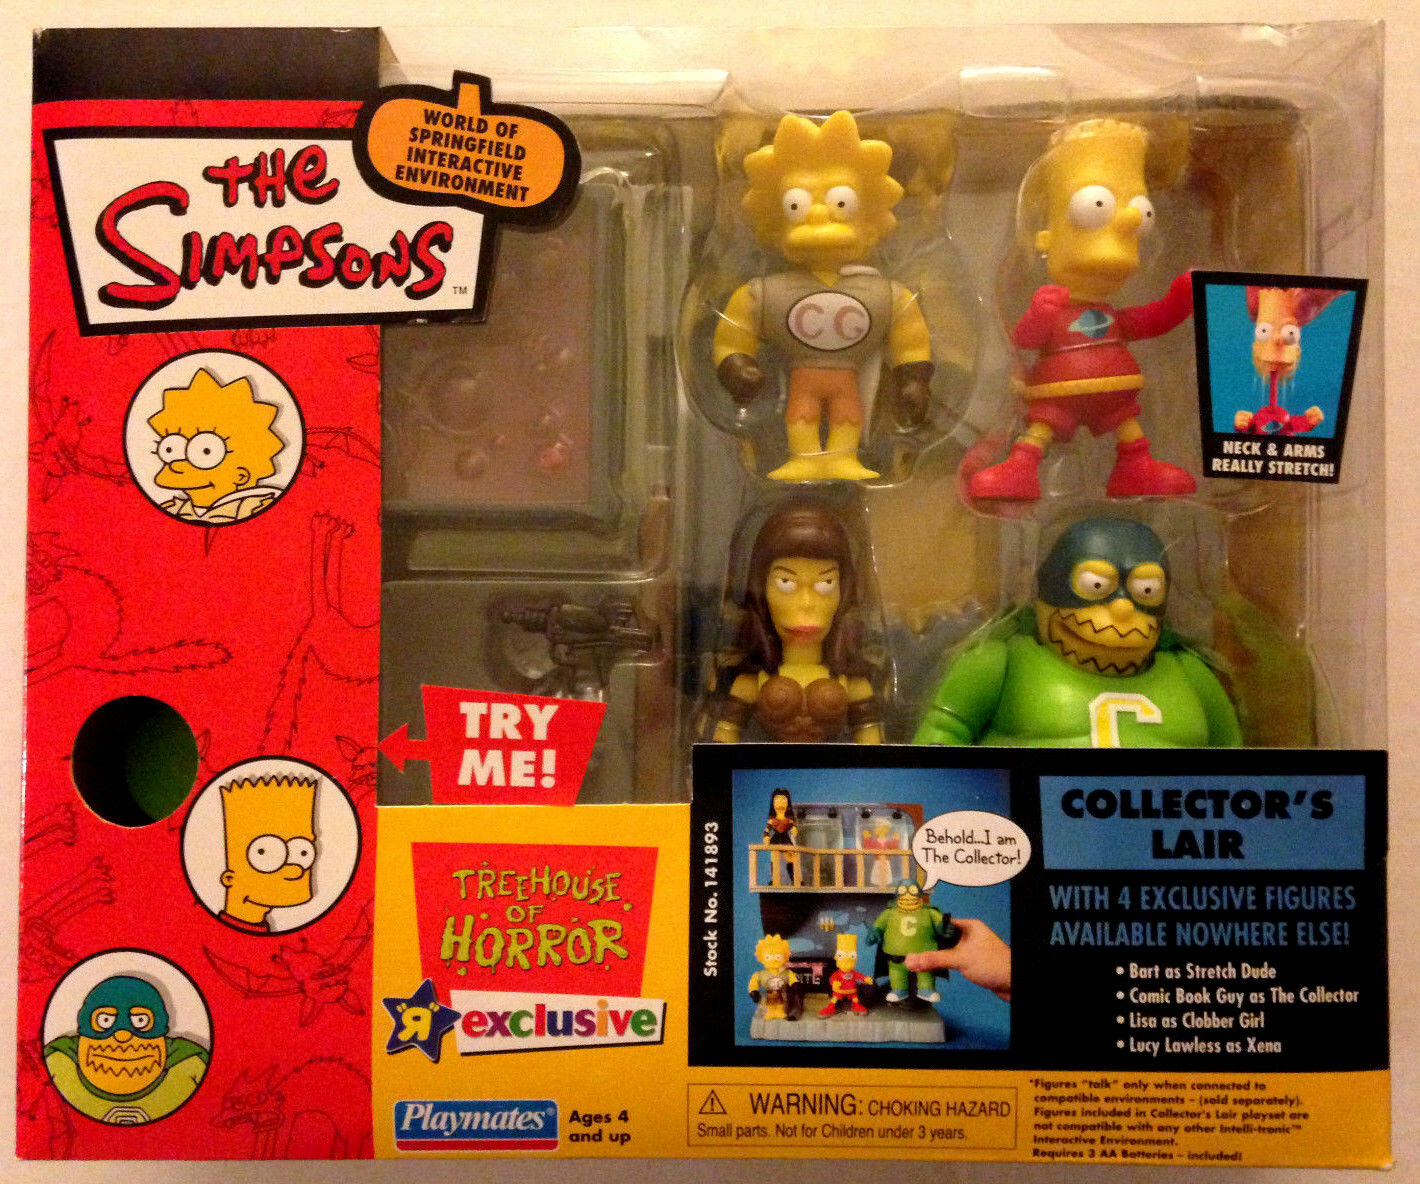 TOYS R US EXCLUSIVE THE SIMPSONS SIMPSONS SIMPSONS TREEHOUSE OF HORROR COLLECTOR'S LAIR FIGURE SET b045bb